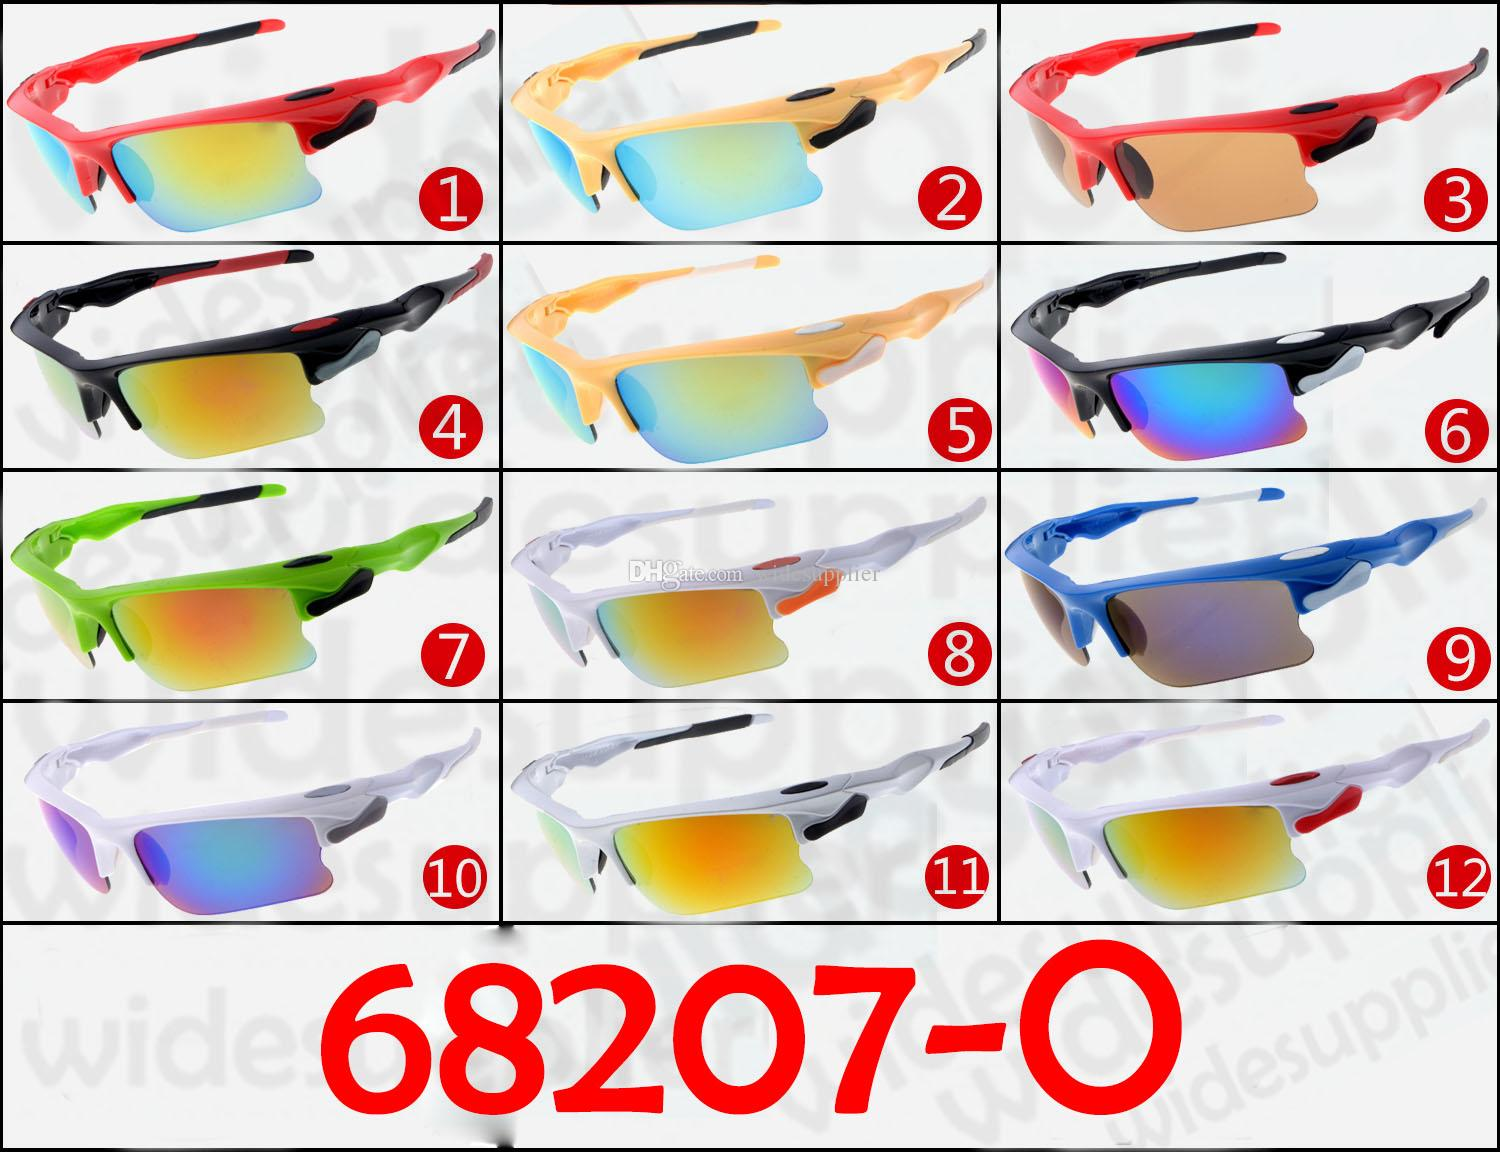 2017 Popular Sunglasses Cool Brand New Designer Sunglasses for Men and Women Outdoor Sport Cycling SUN Glass Eyewear 12 colors Factory Price